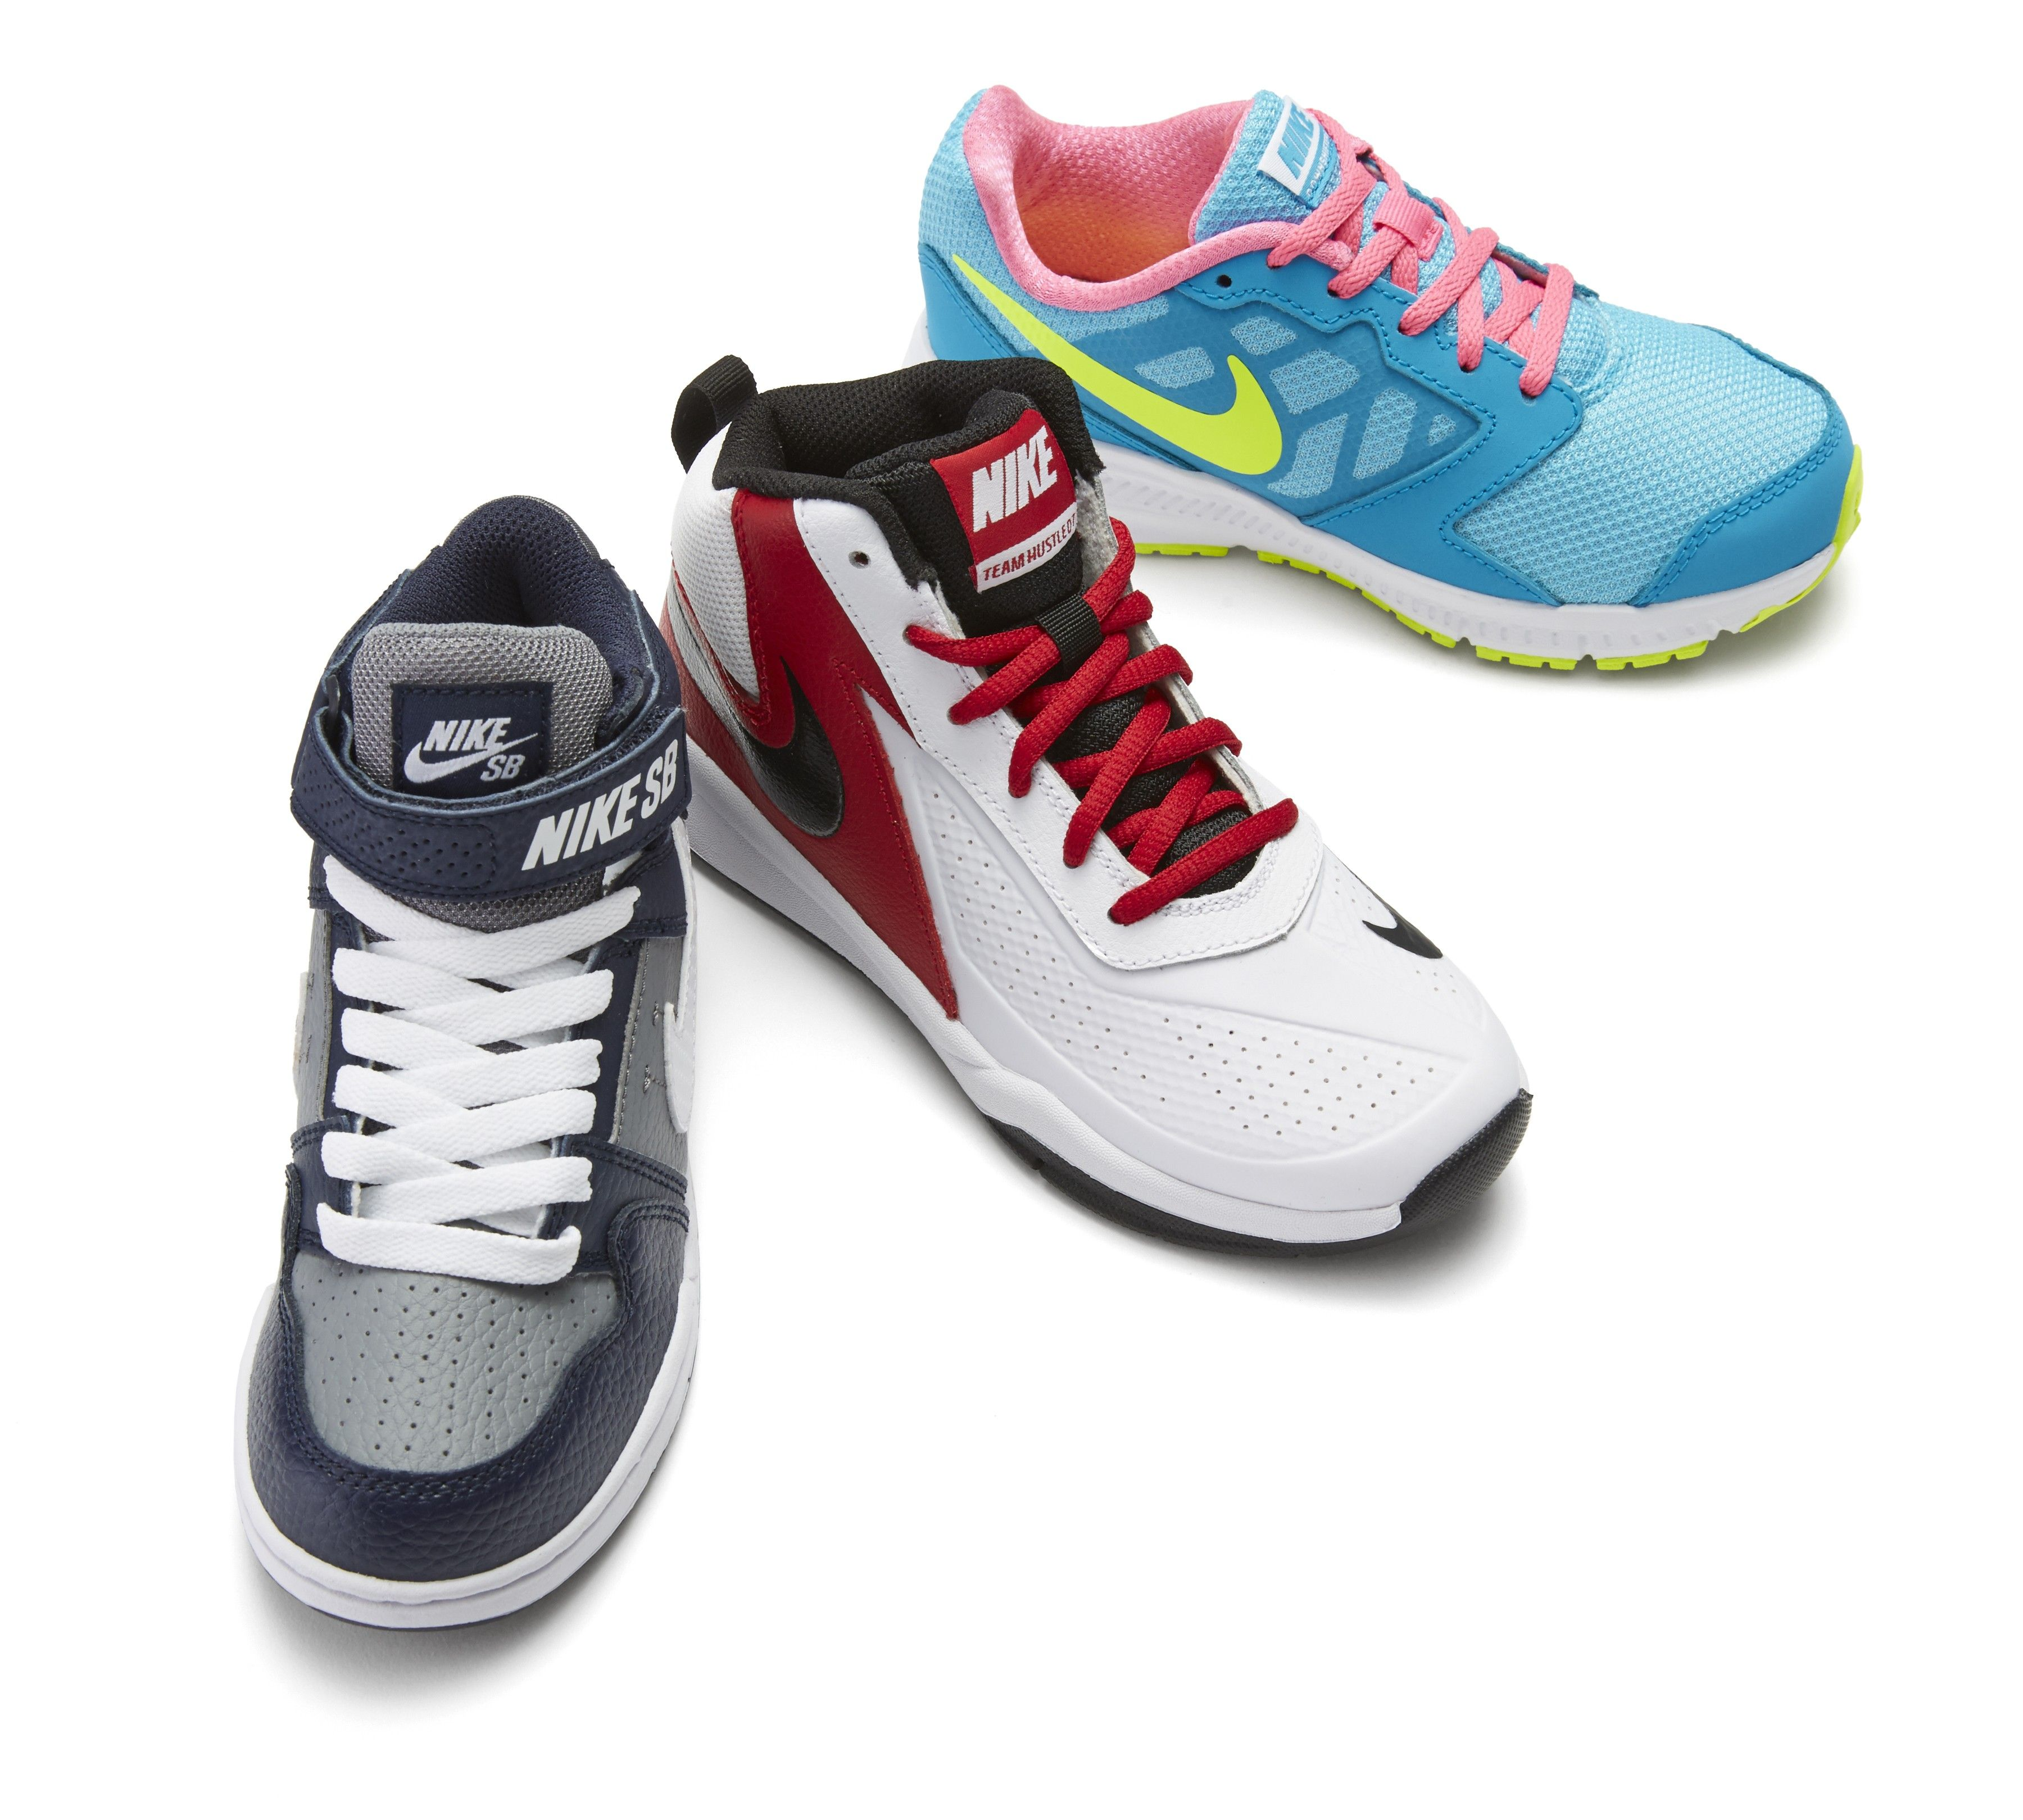 Skate shoes types - Stylishly Combining Two Types Of Leather With Other Materials These Cushioned Skate Shoes Give Them